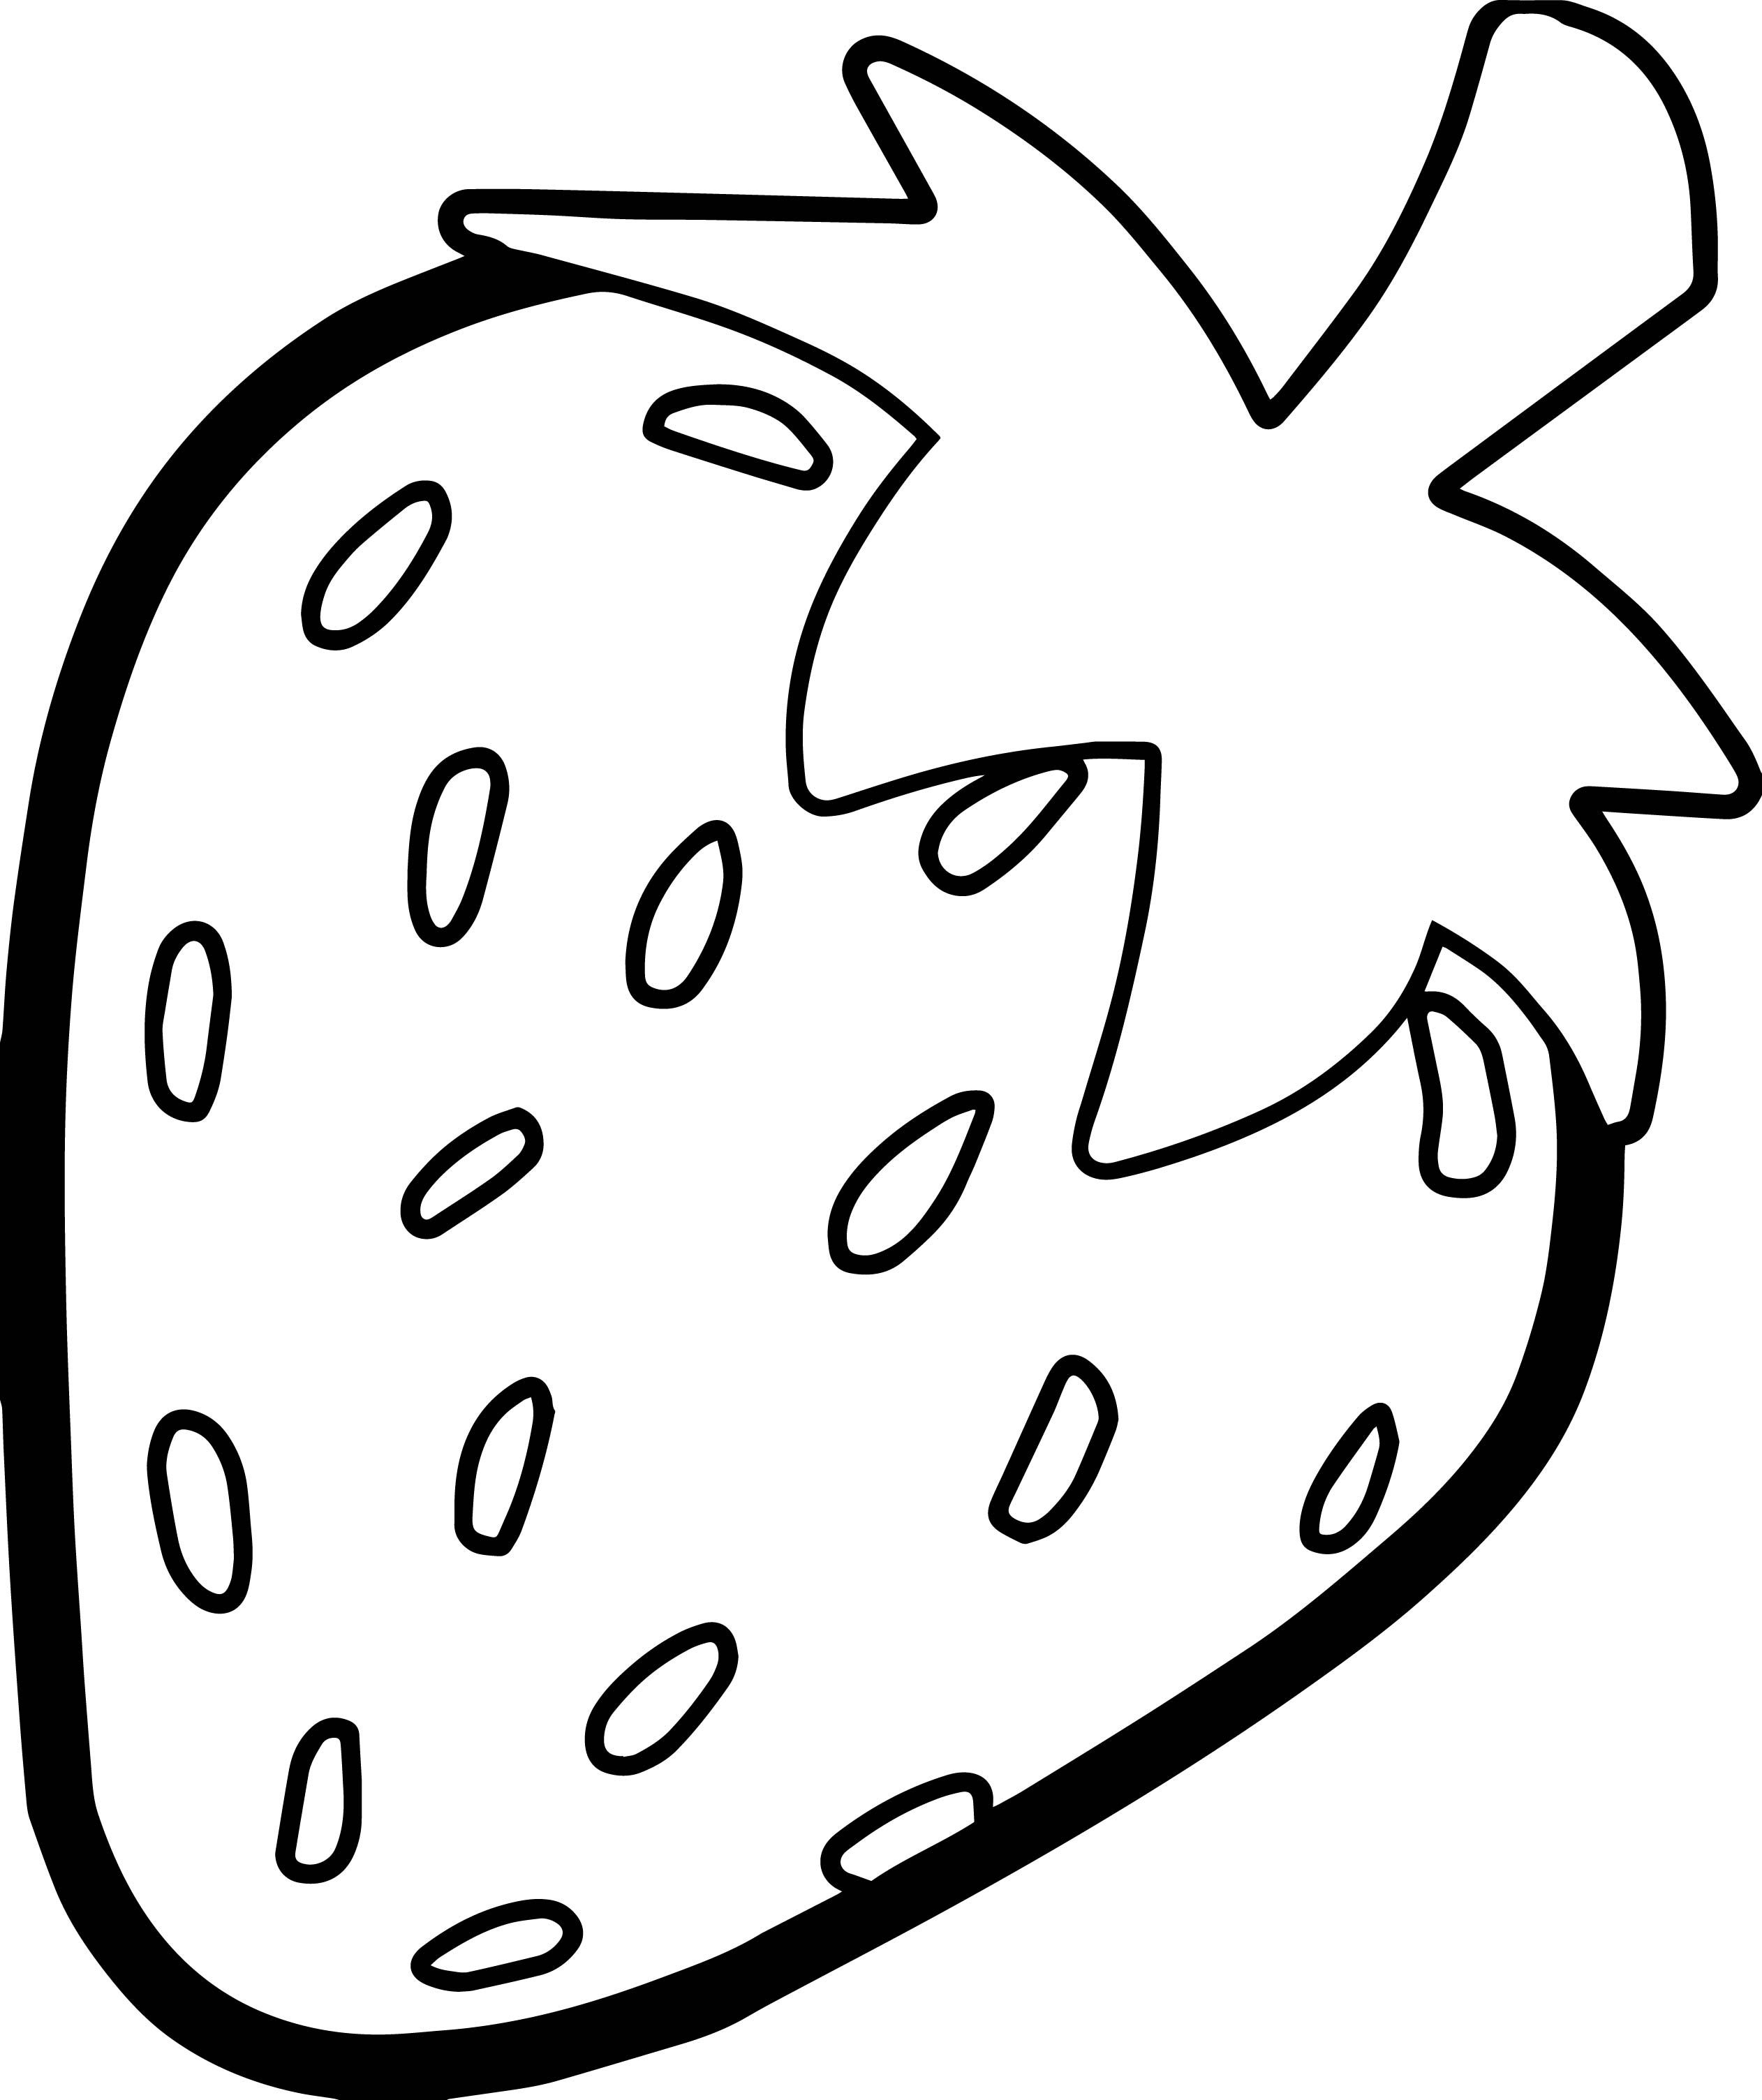 Strawberries clipart colour. Nice strawberry bold outline